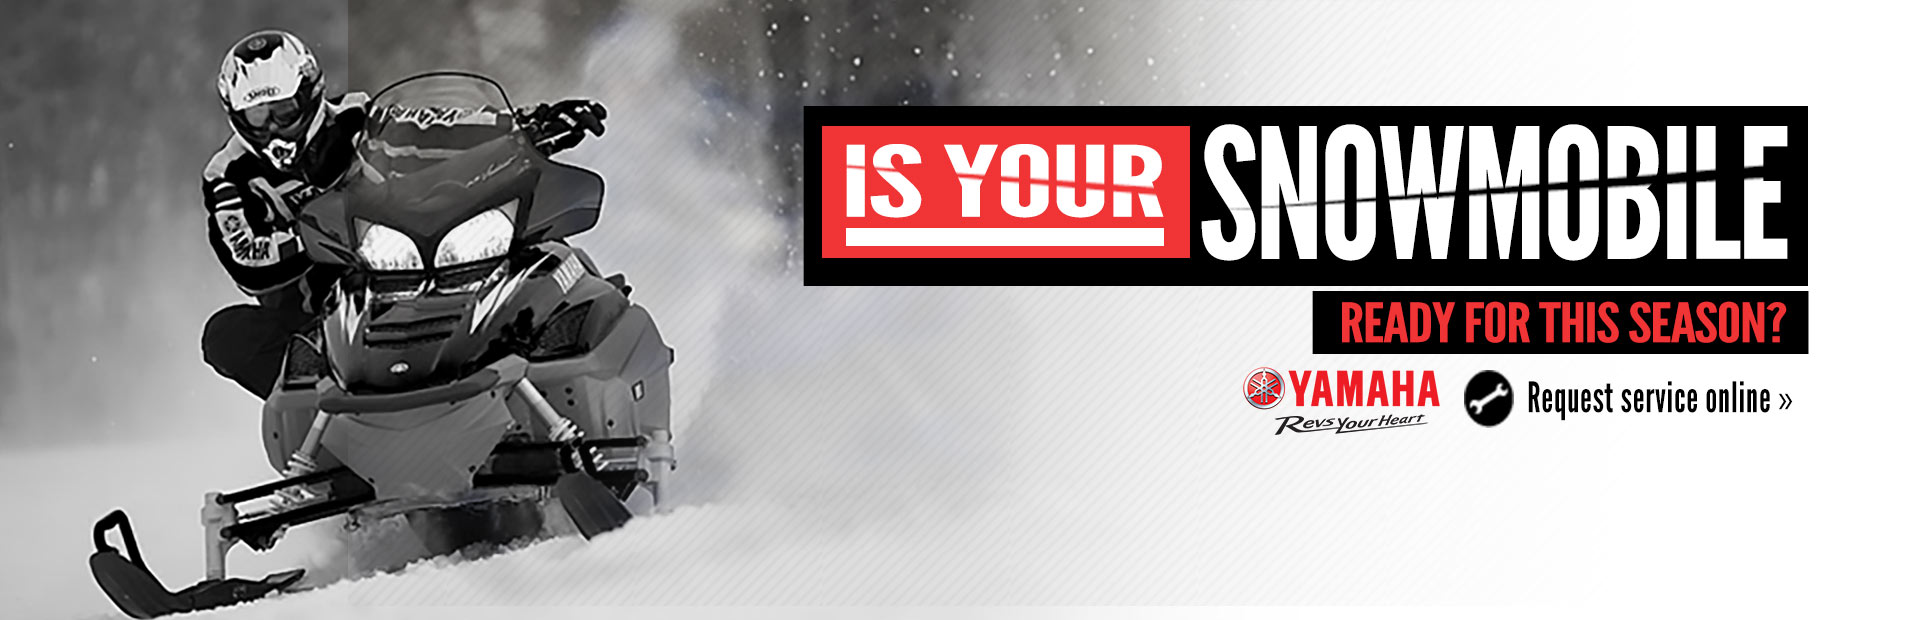 Is your snowmobile ready for the season? Click here to request service!